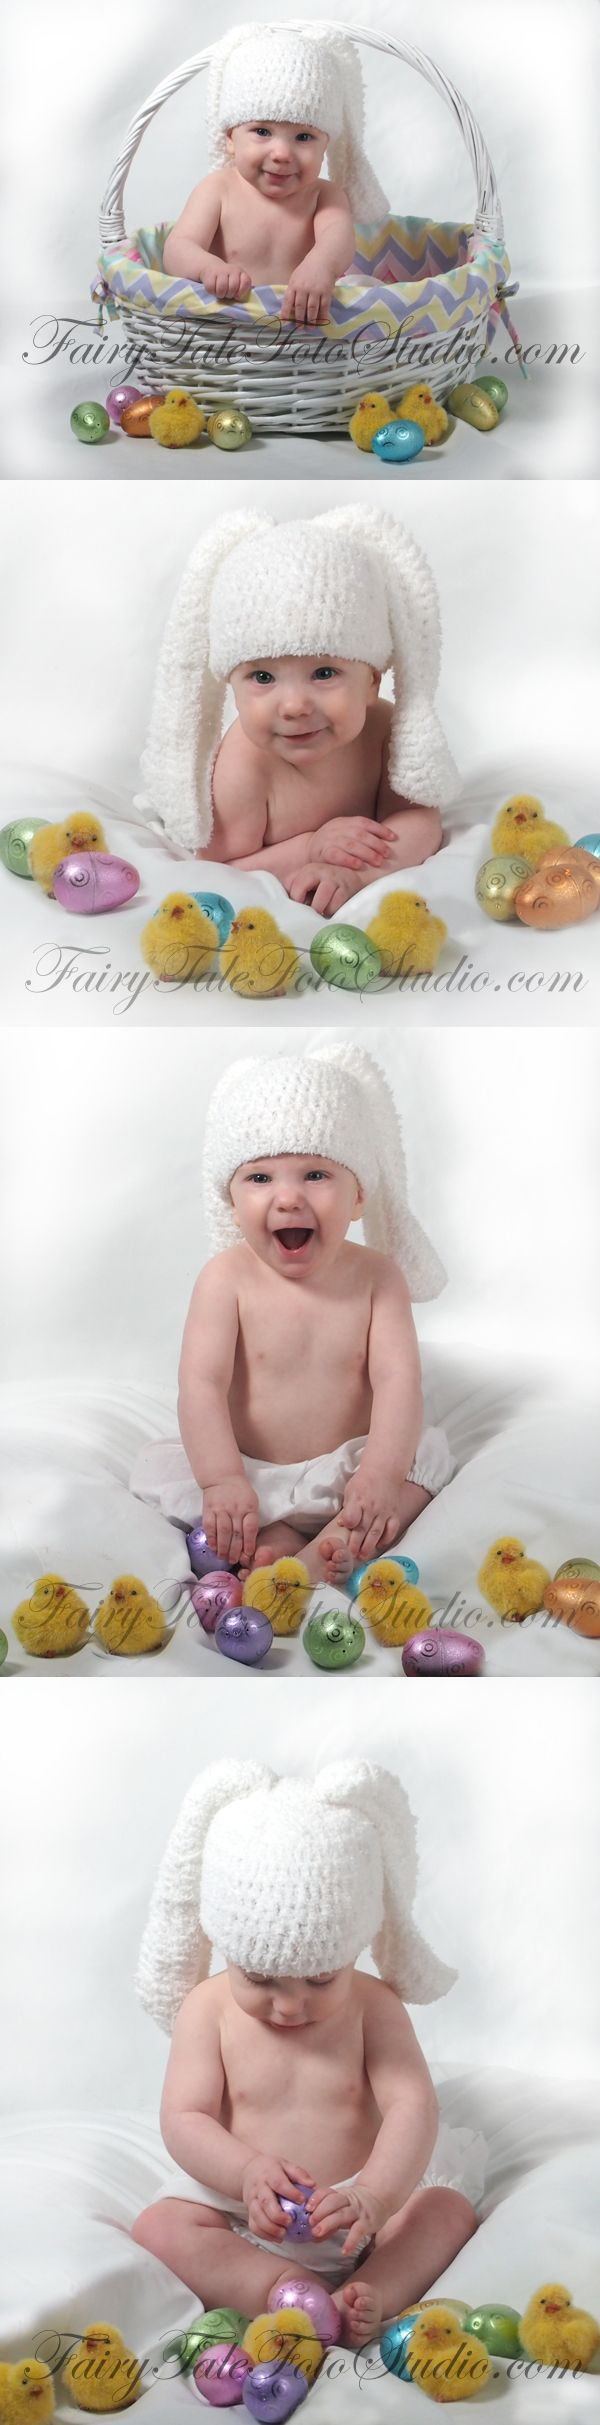 5 Month Old Boy Baby Bunny In An Easter Basket With Chicks And Eggs Portrait Poses